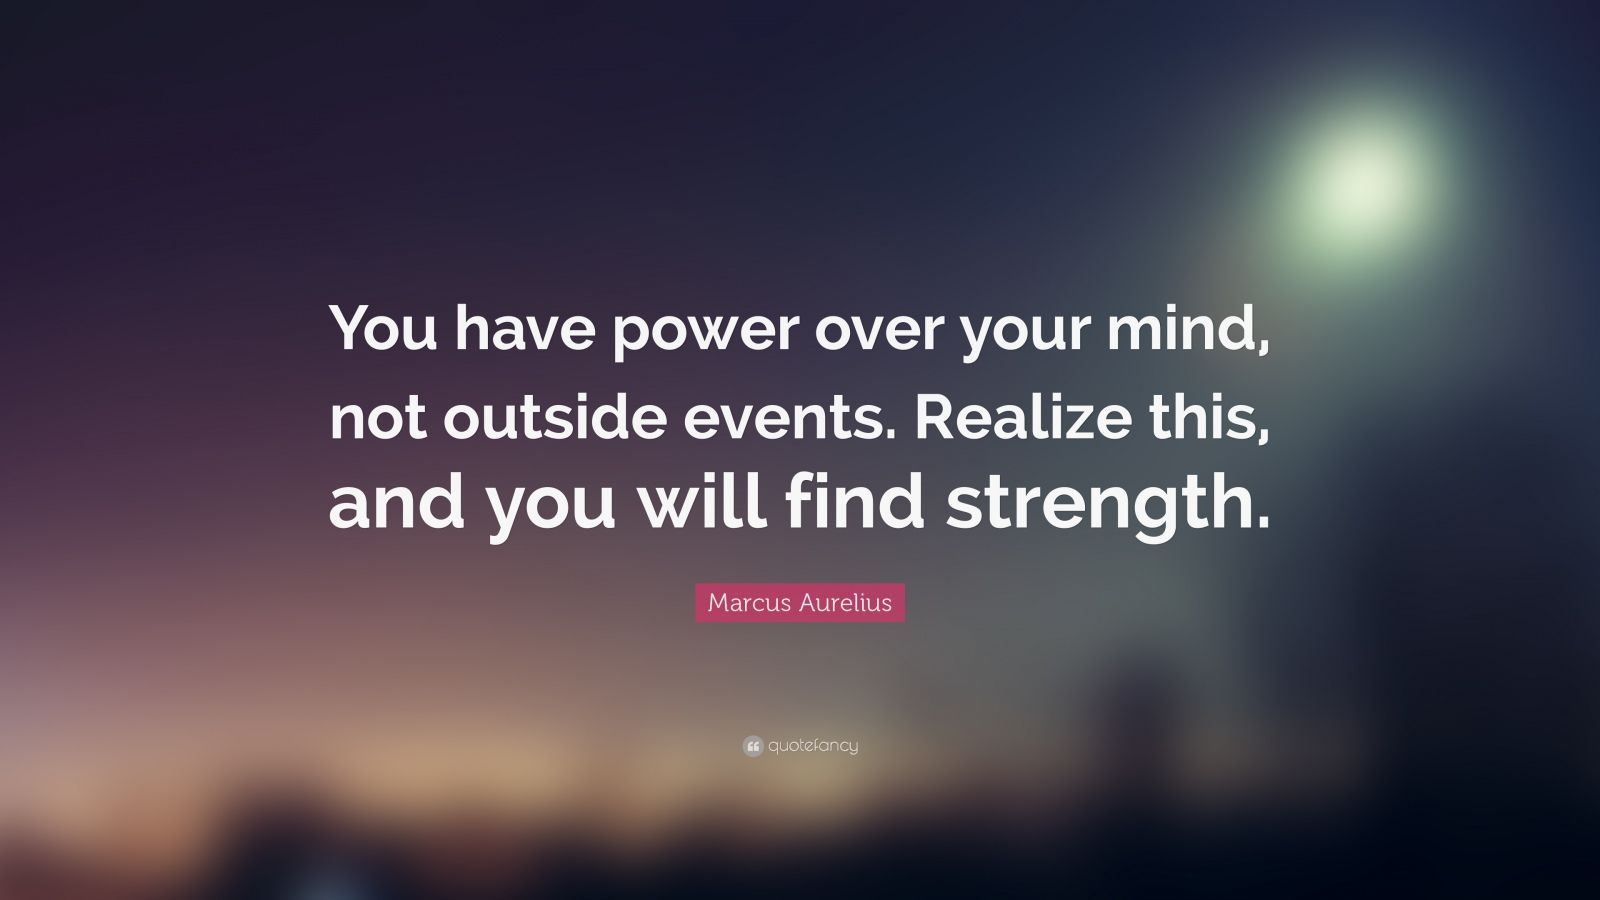 Wallpaper With Quotes Attitude Marcus Aurelius Quote You Have Power Over Your Mind Not